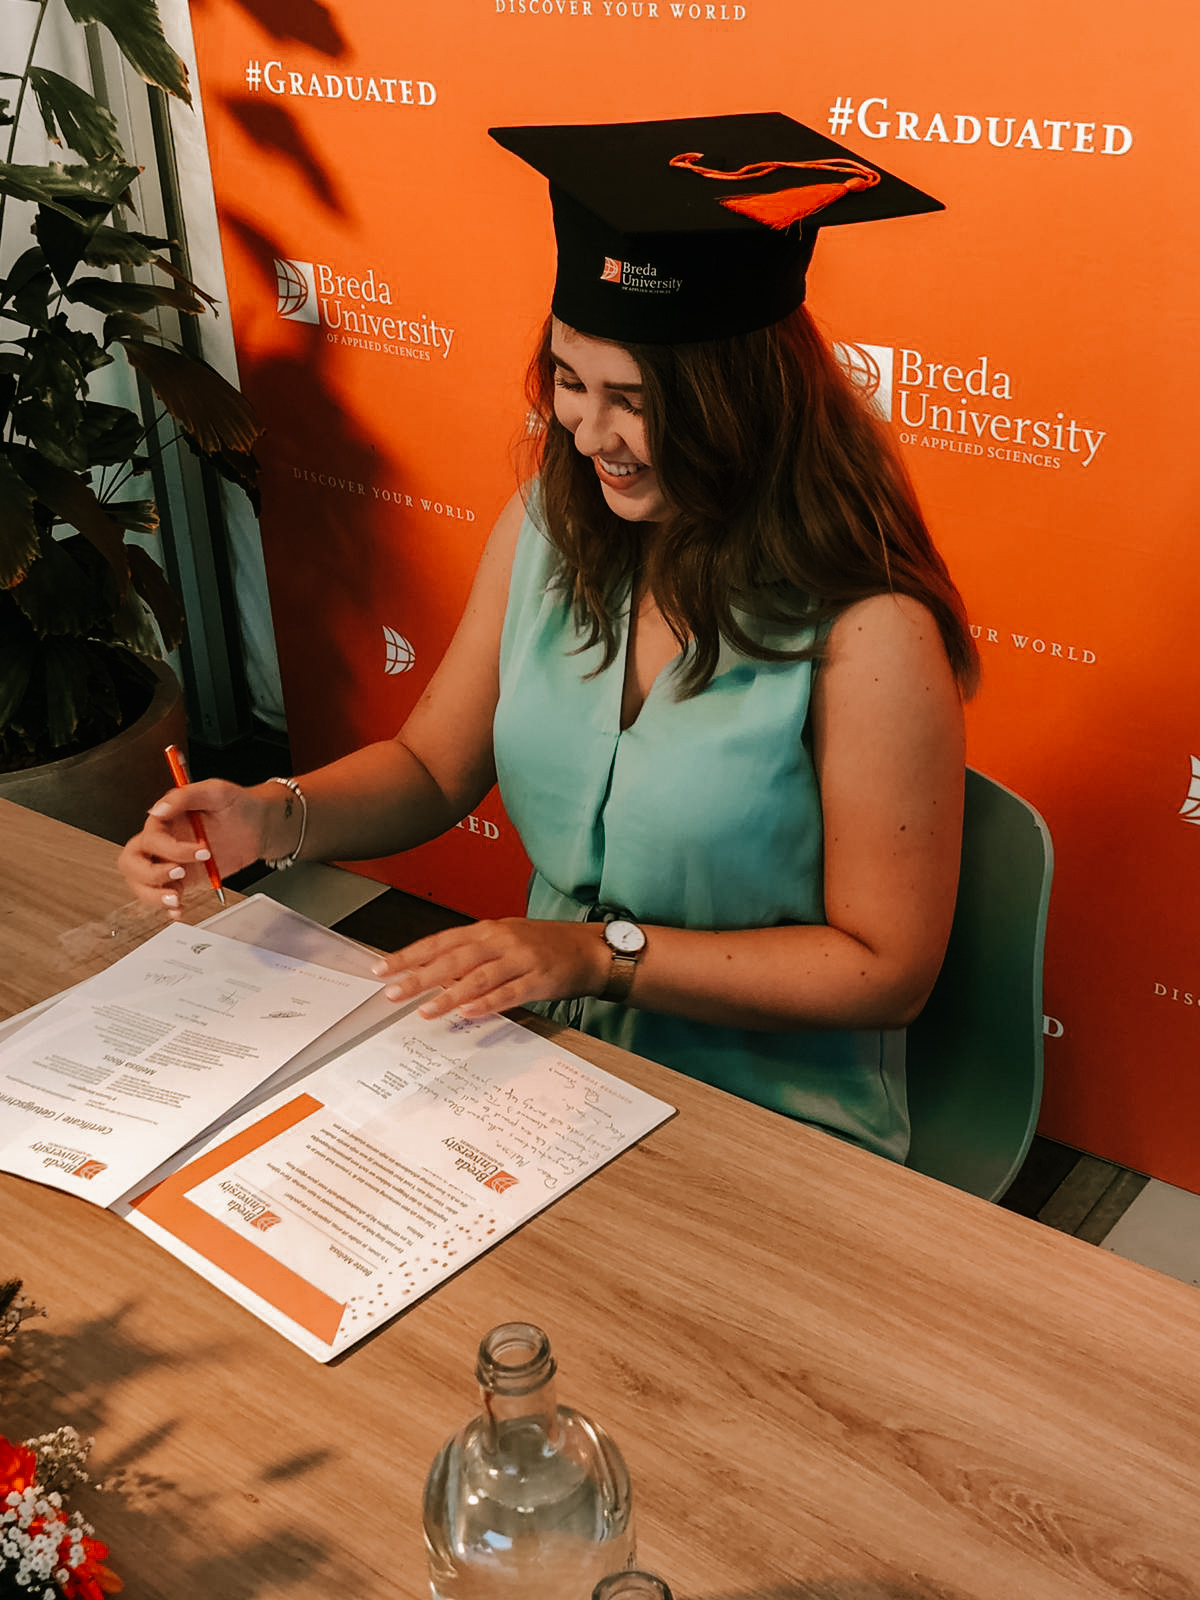 signing my degree on the diploma, graduation ceremony